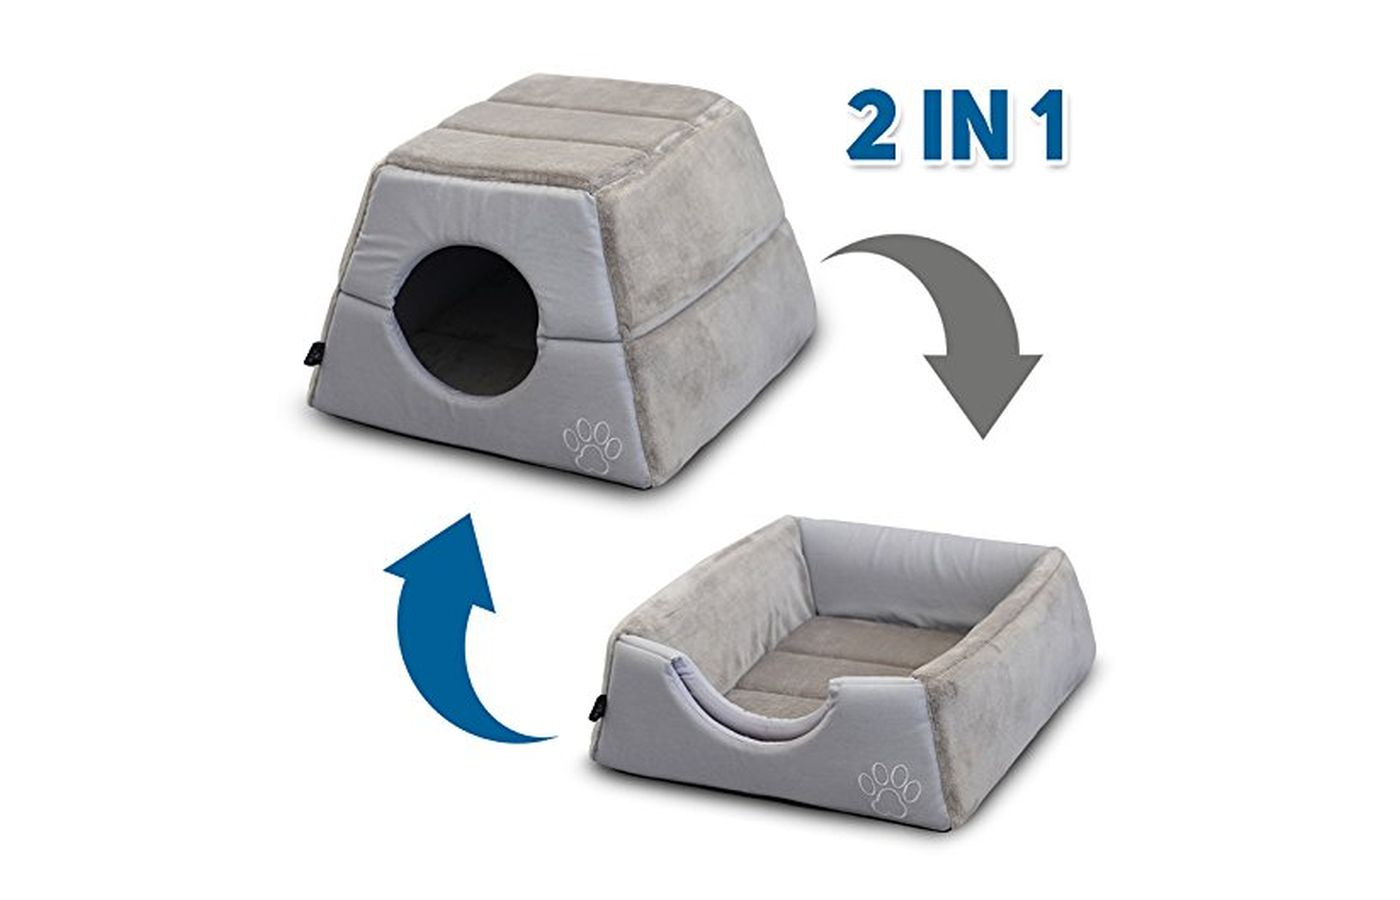 Kingfa Cave Shape Cat Bed or Condo